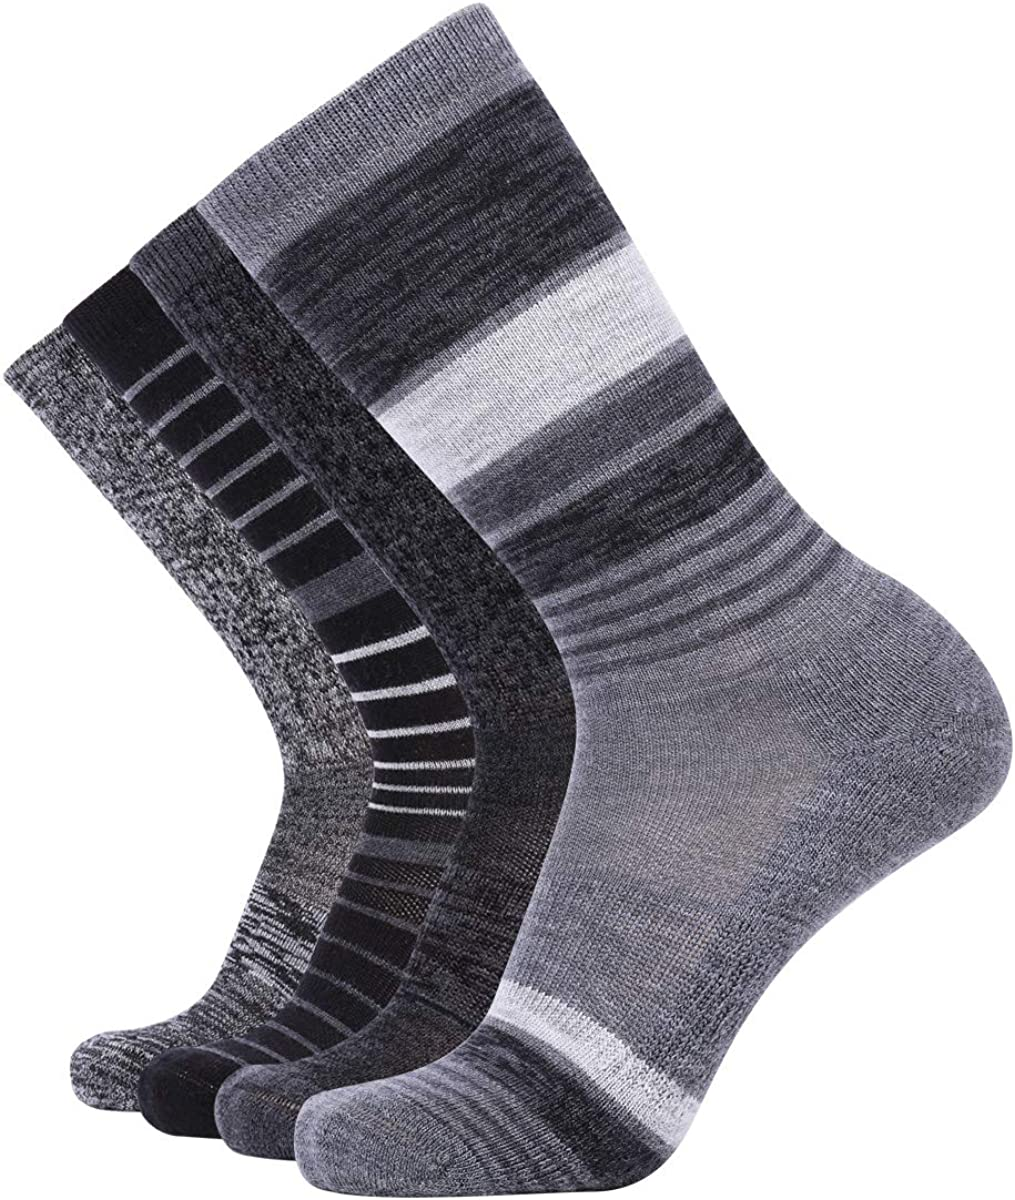 EnerWear 4 Pack Women's Merino Wool Outdoor Hiking Trail Crew Sock (US Shoe Size 4-10, Black Stripe/Dark Grey/Multi): Clothing